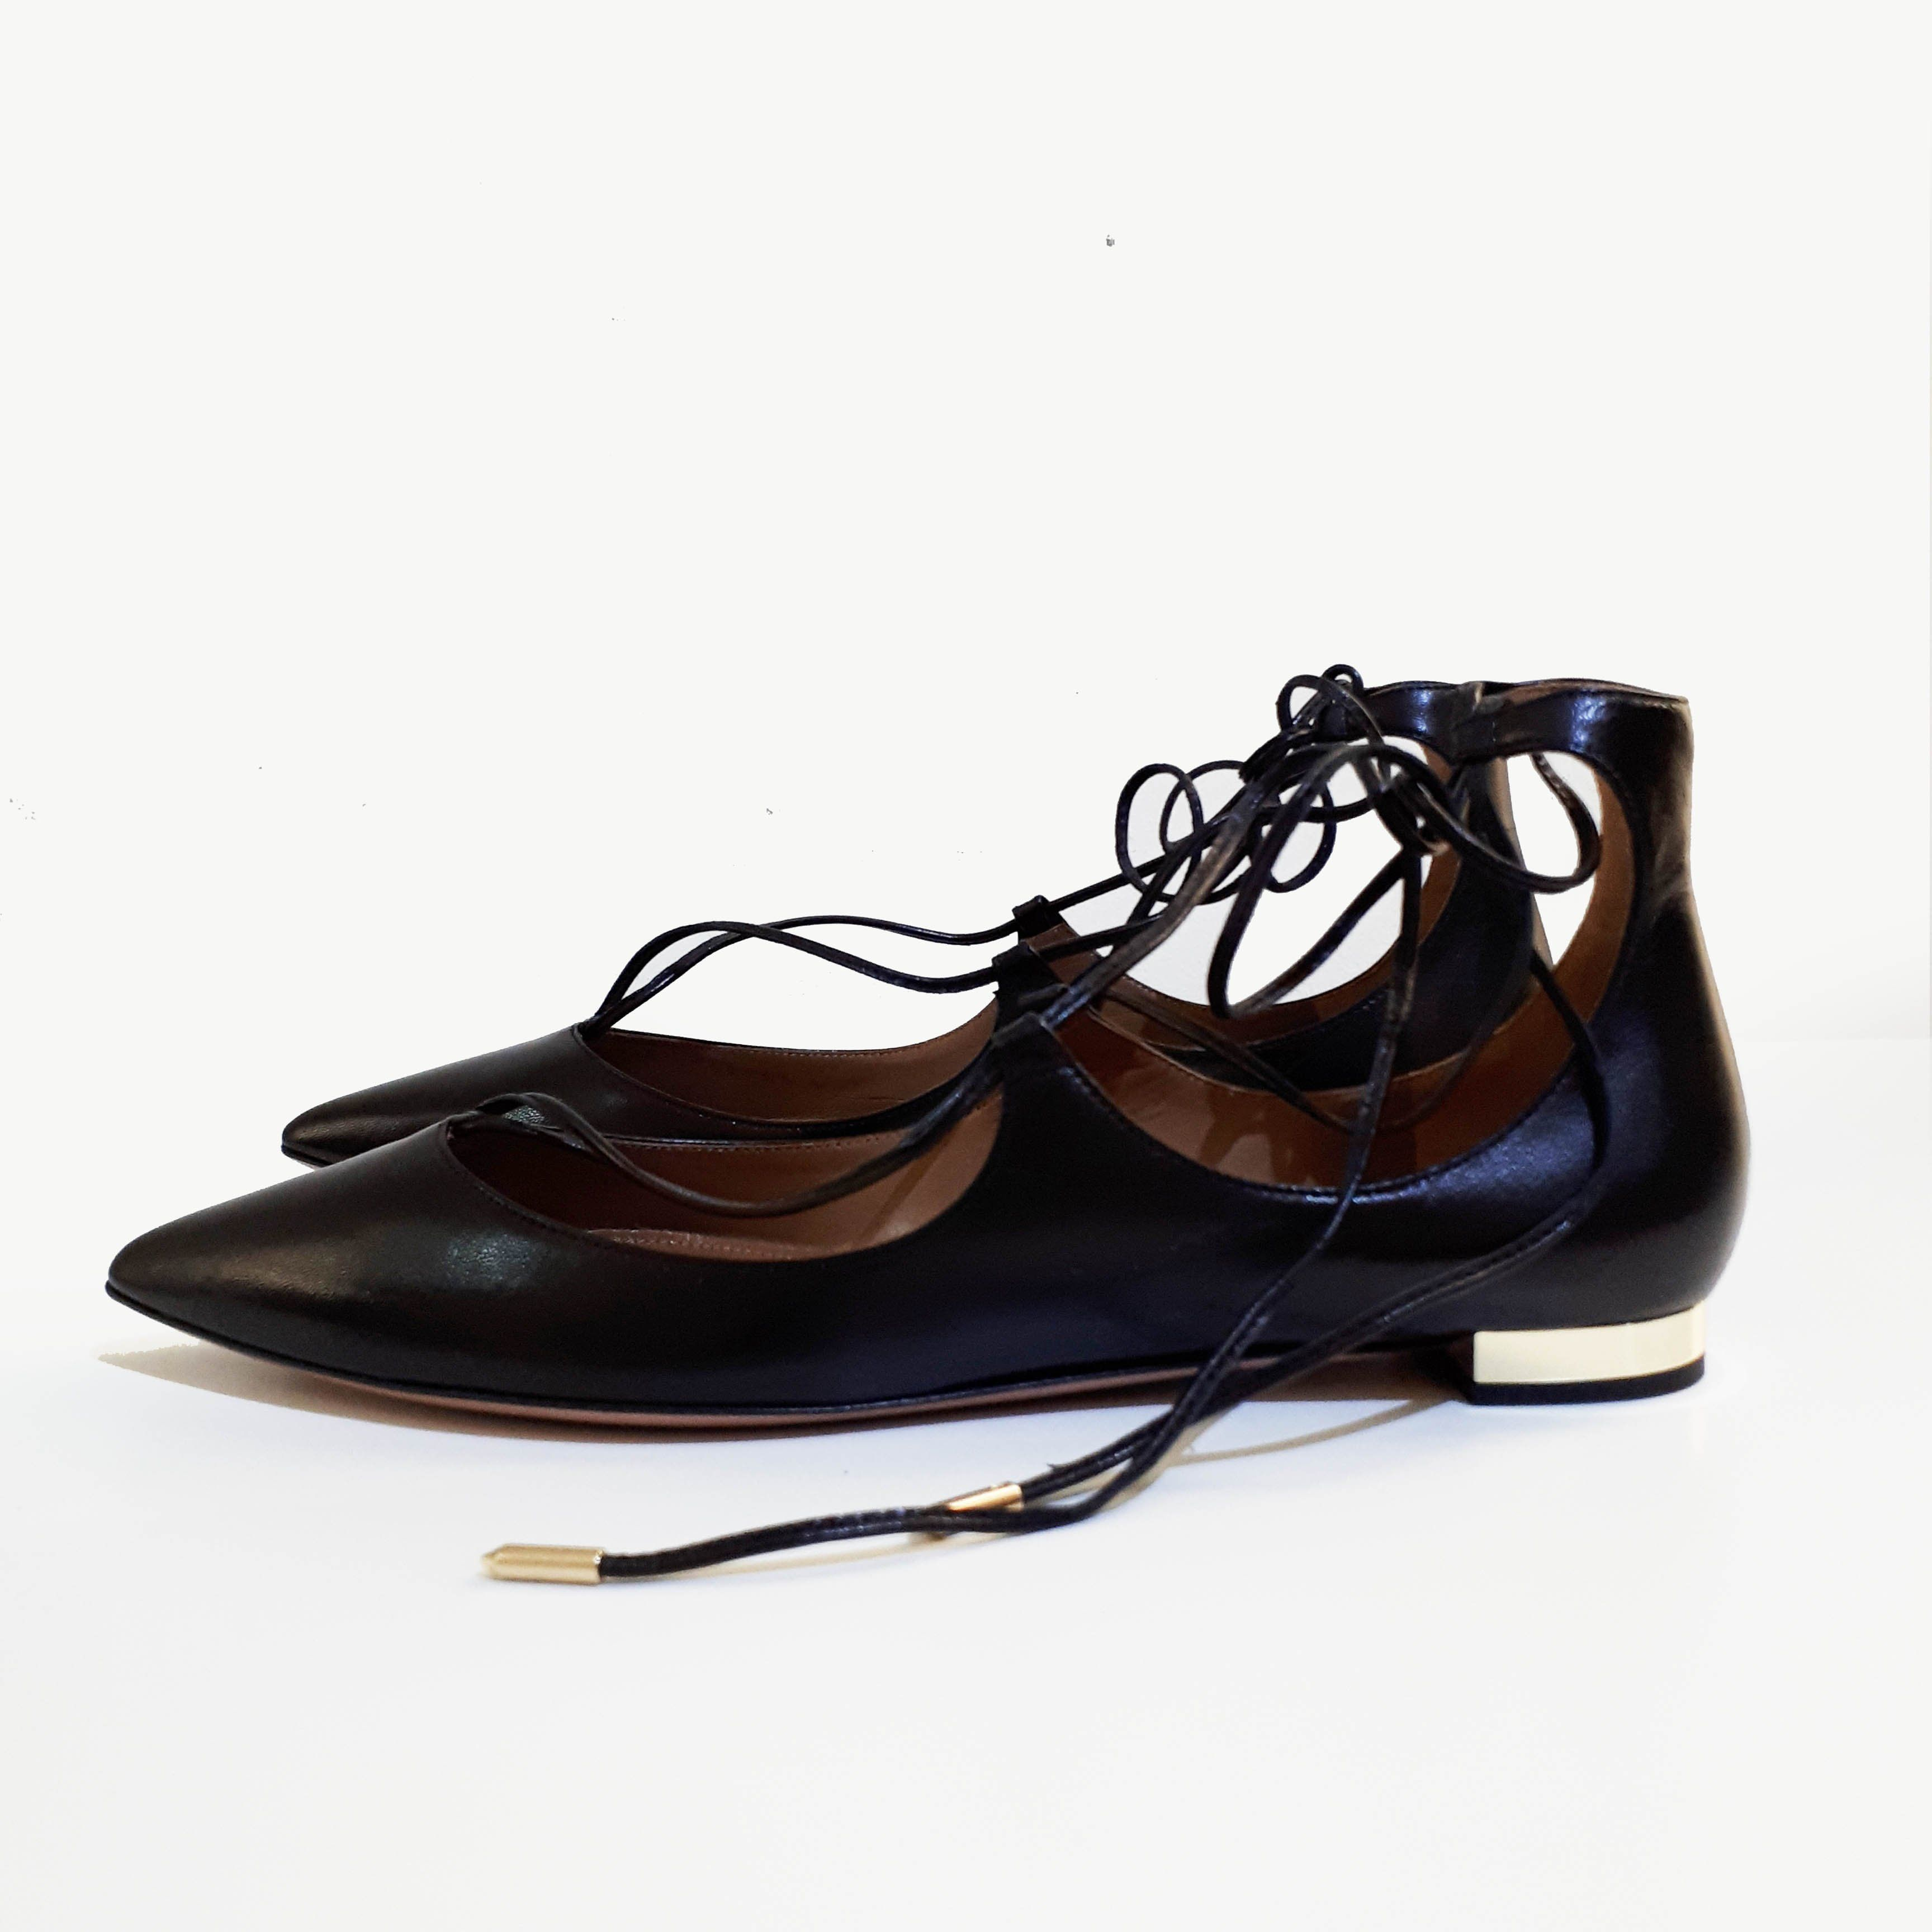 Aquazzura Pointed Toe Black Lace-up Flats